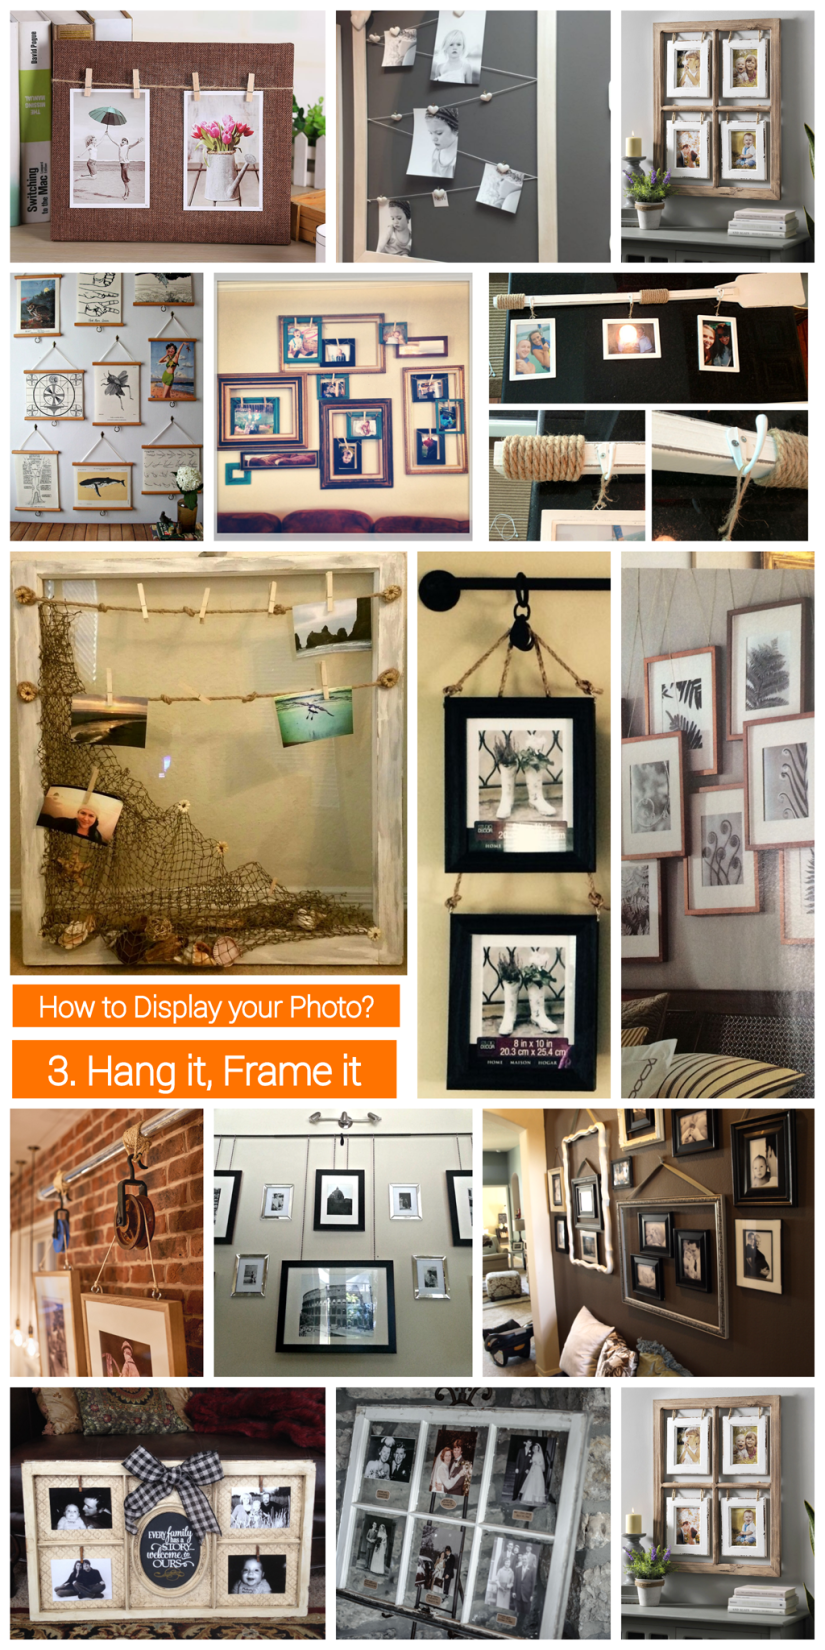 how to display  photo collage - hang and frame photo collage